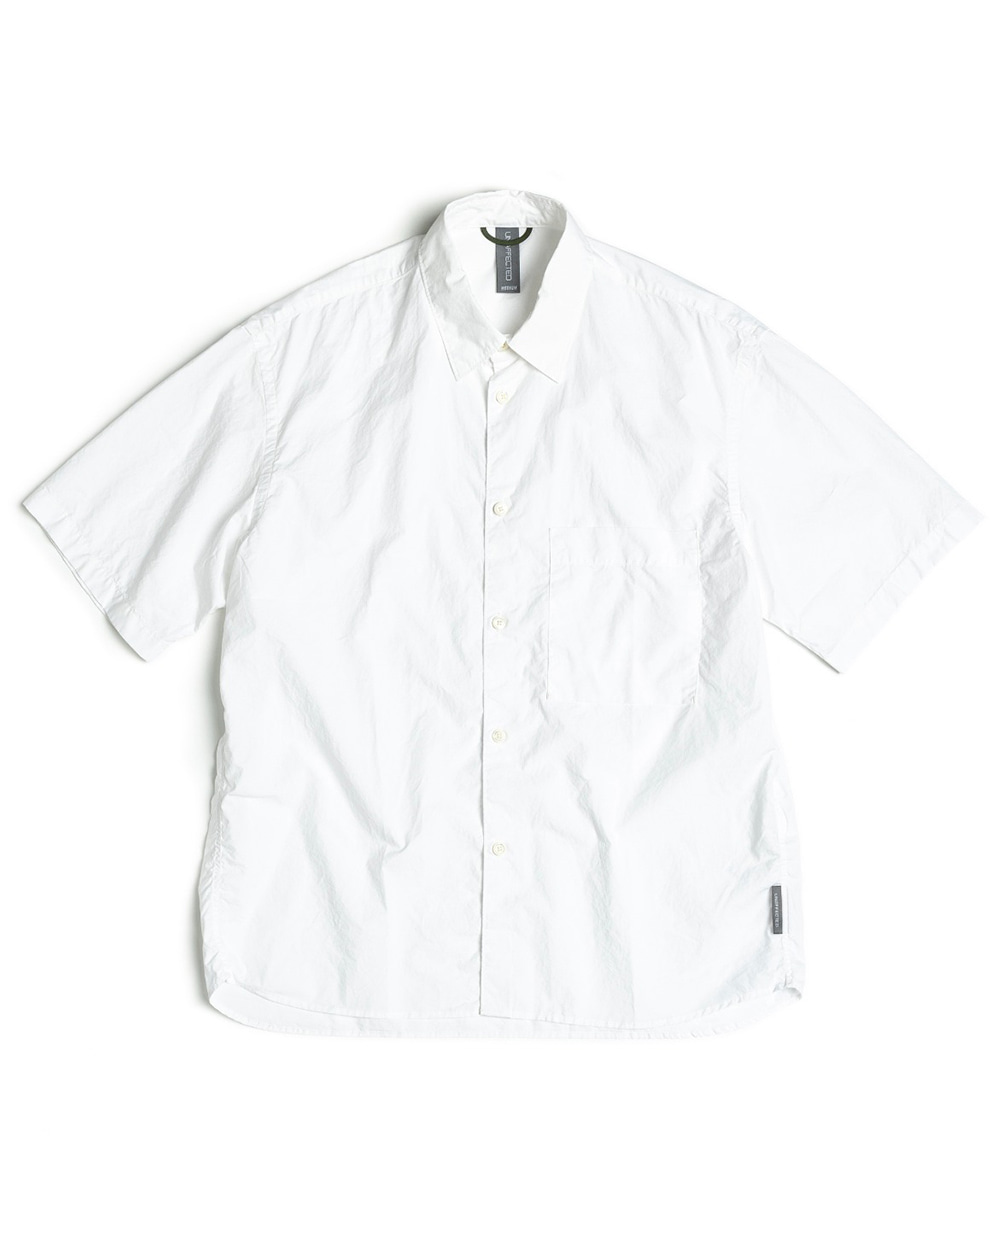 언어펙티드 LOGO LABEL HALF SHIRT (Off white)